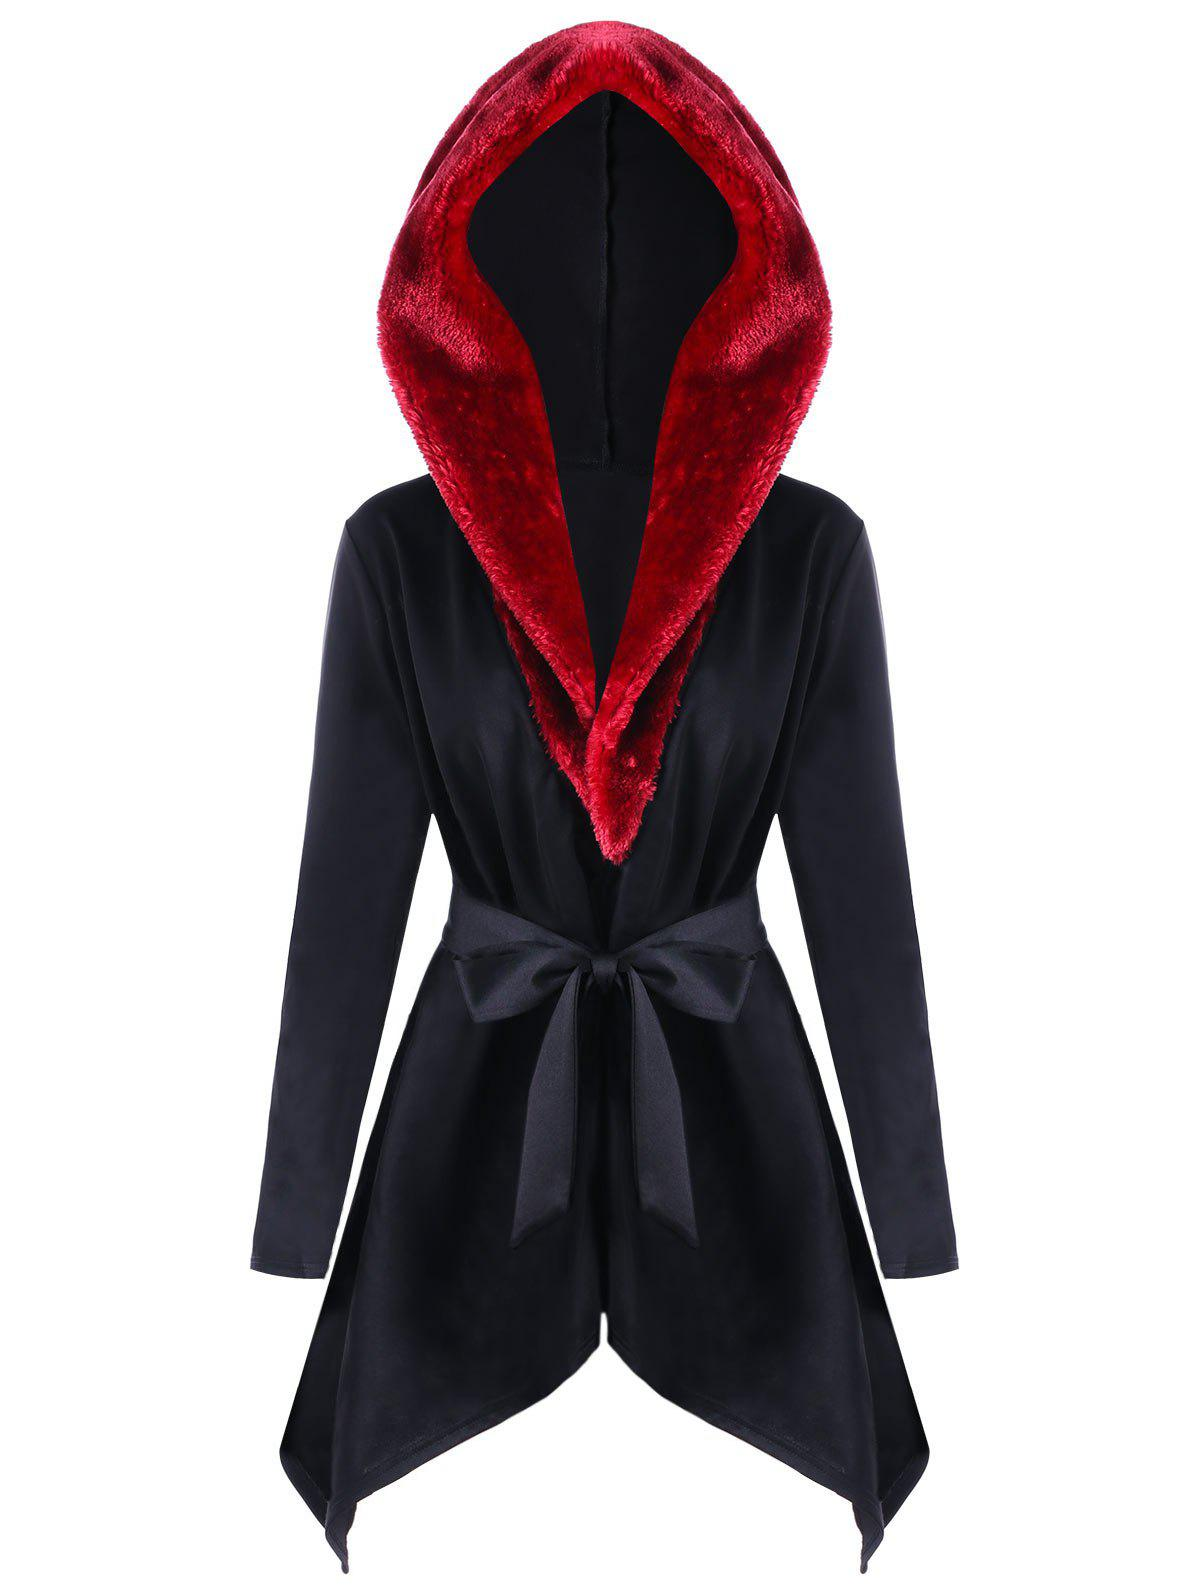 Faux Fur  Trimmed Asymmetric Hooded CoatWOMEN<br><br>Size: M; Color: BLACK; Clothes Type: Others; Material: Polyester,Spandex; Type: Asymmetric Length; Shirt Length: Long; Sleeve Length: Full; Collar: Hooded; Pattern Type: Others; Style: Fashion; Season: Fall,Spring; With Belt: Yes; Weight: 0.5520kg; Package Contents: 1 x Coat 1 x Belt;